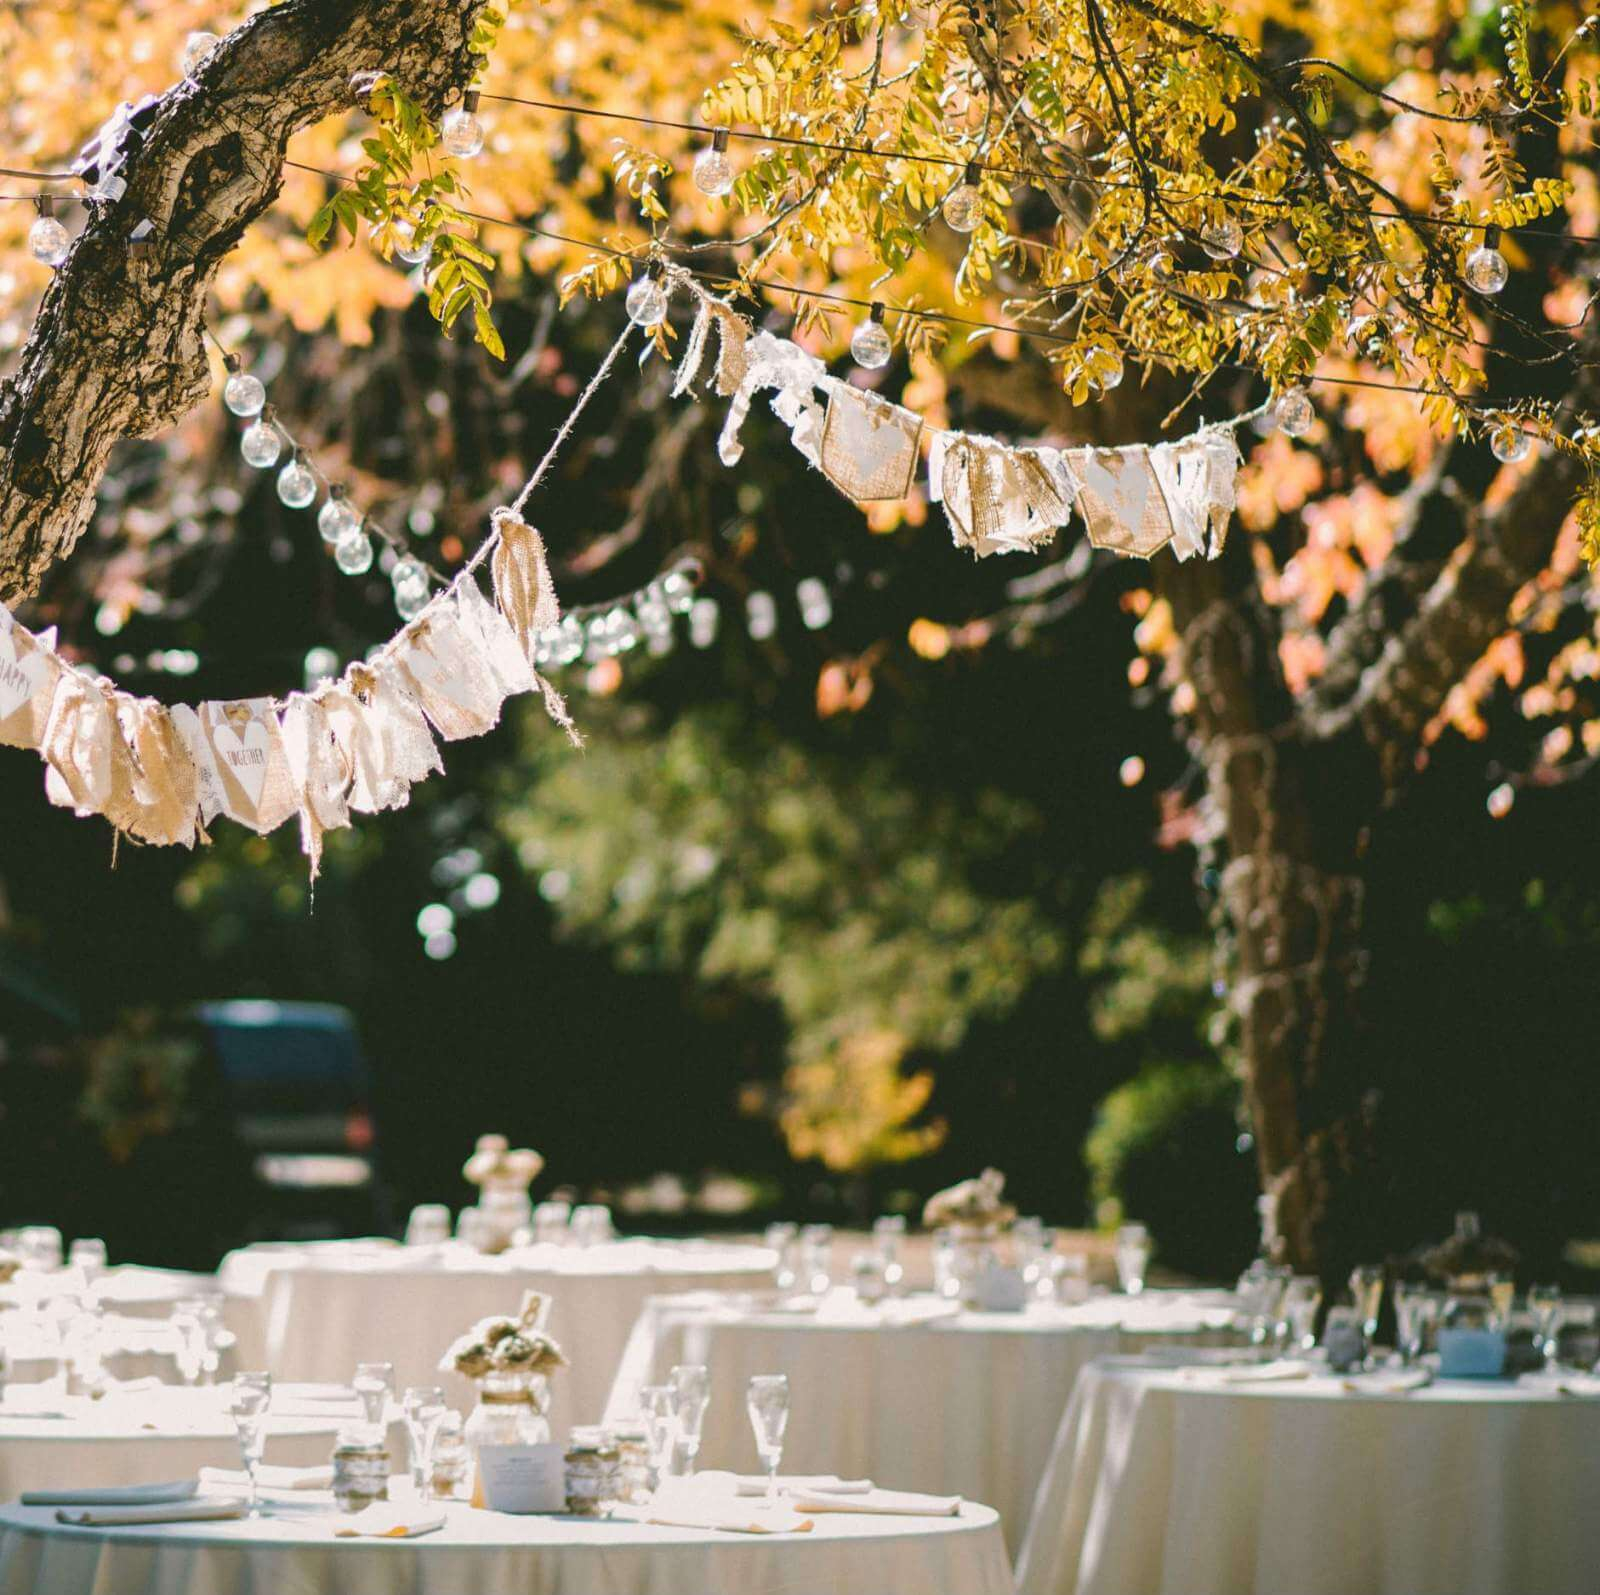 25 Intimate Small Wedding Ideas And Tips Shutterfly with regard to Backyard Bbq Wedding Ideas On A Budget